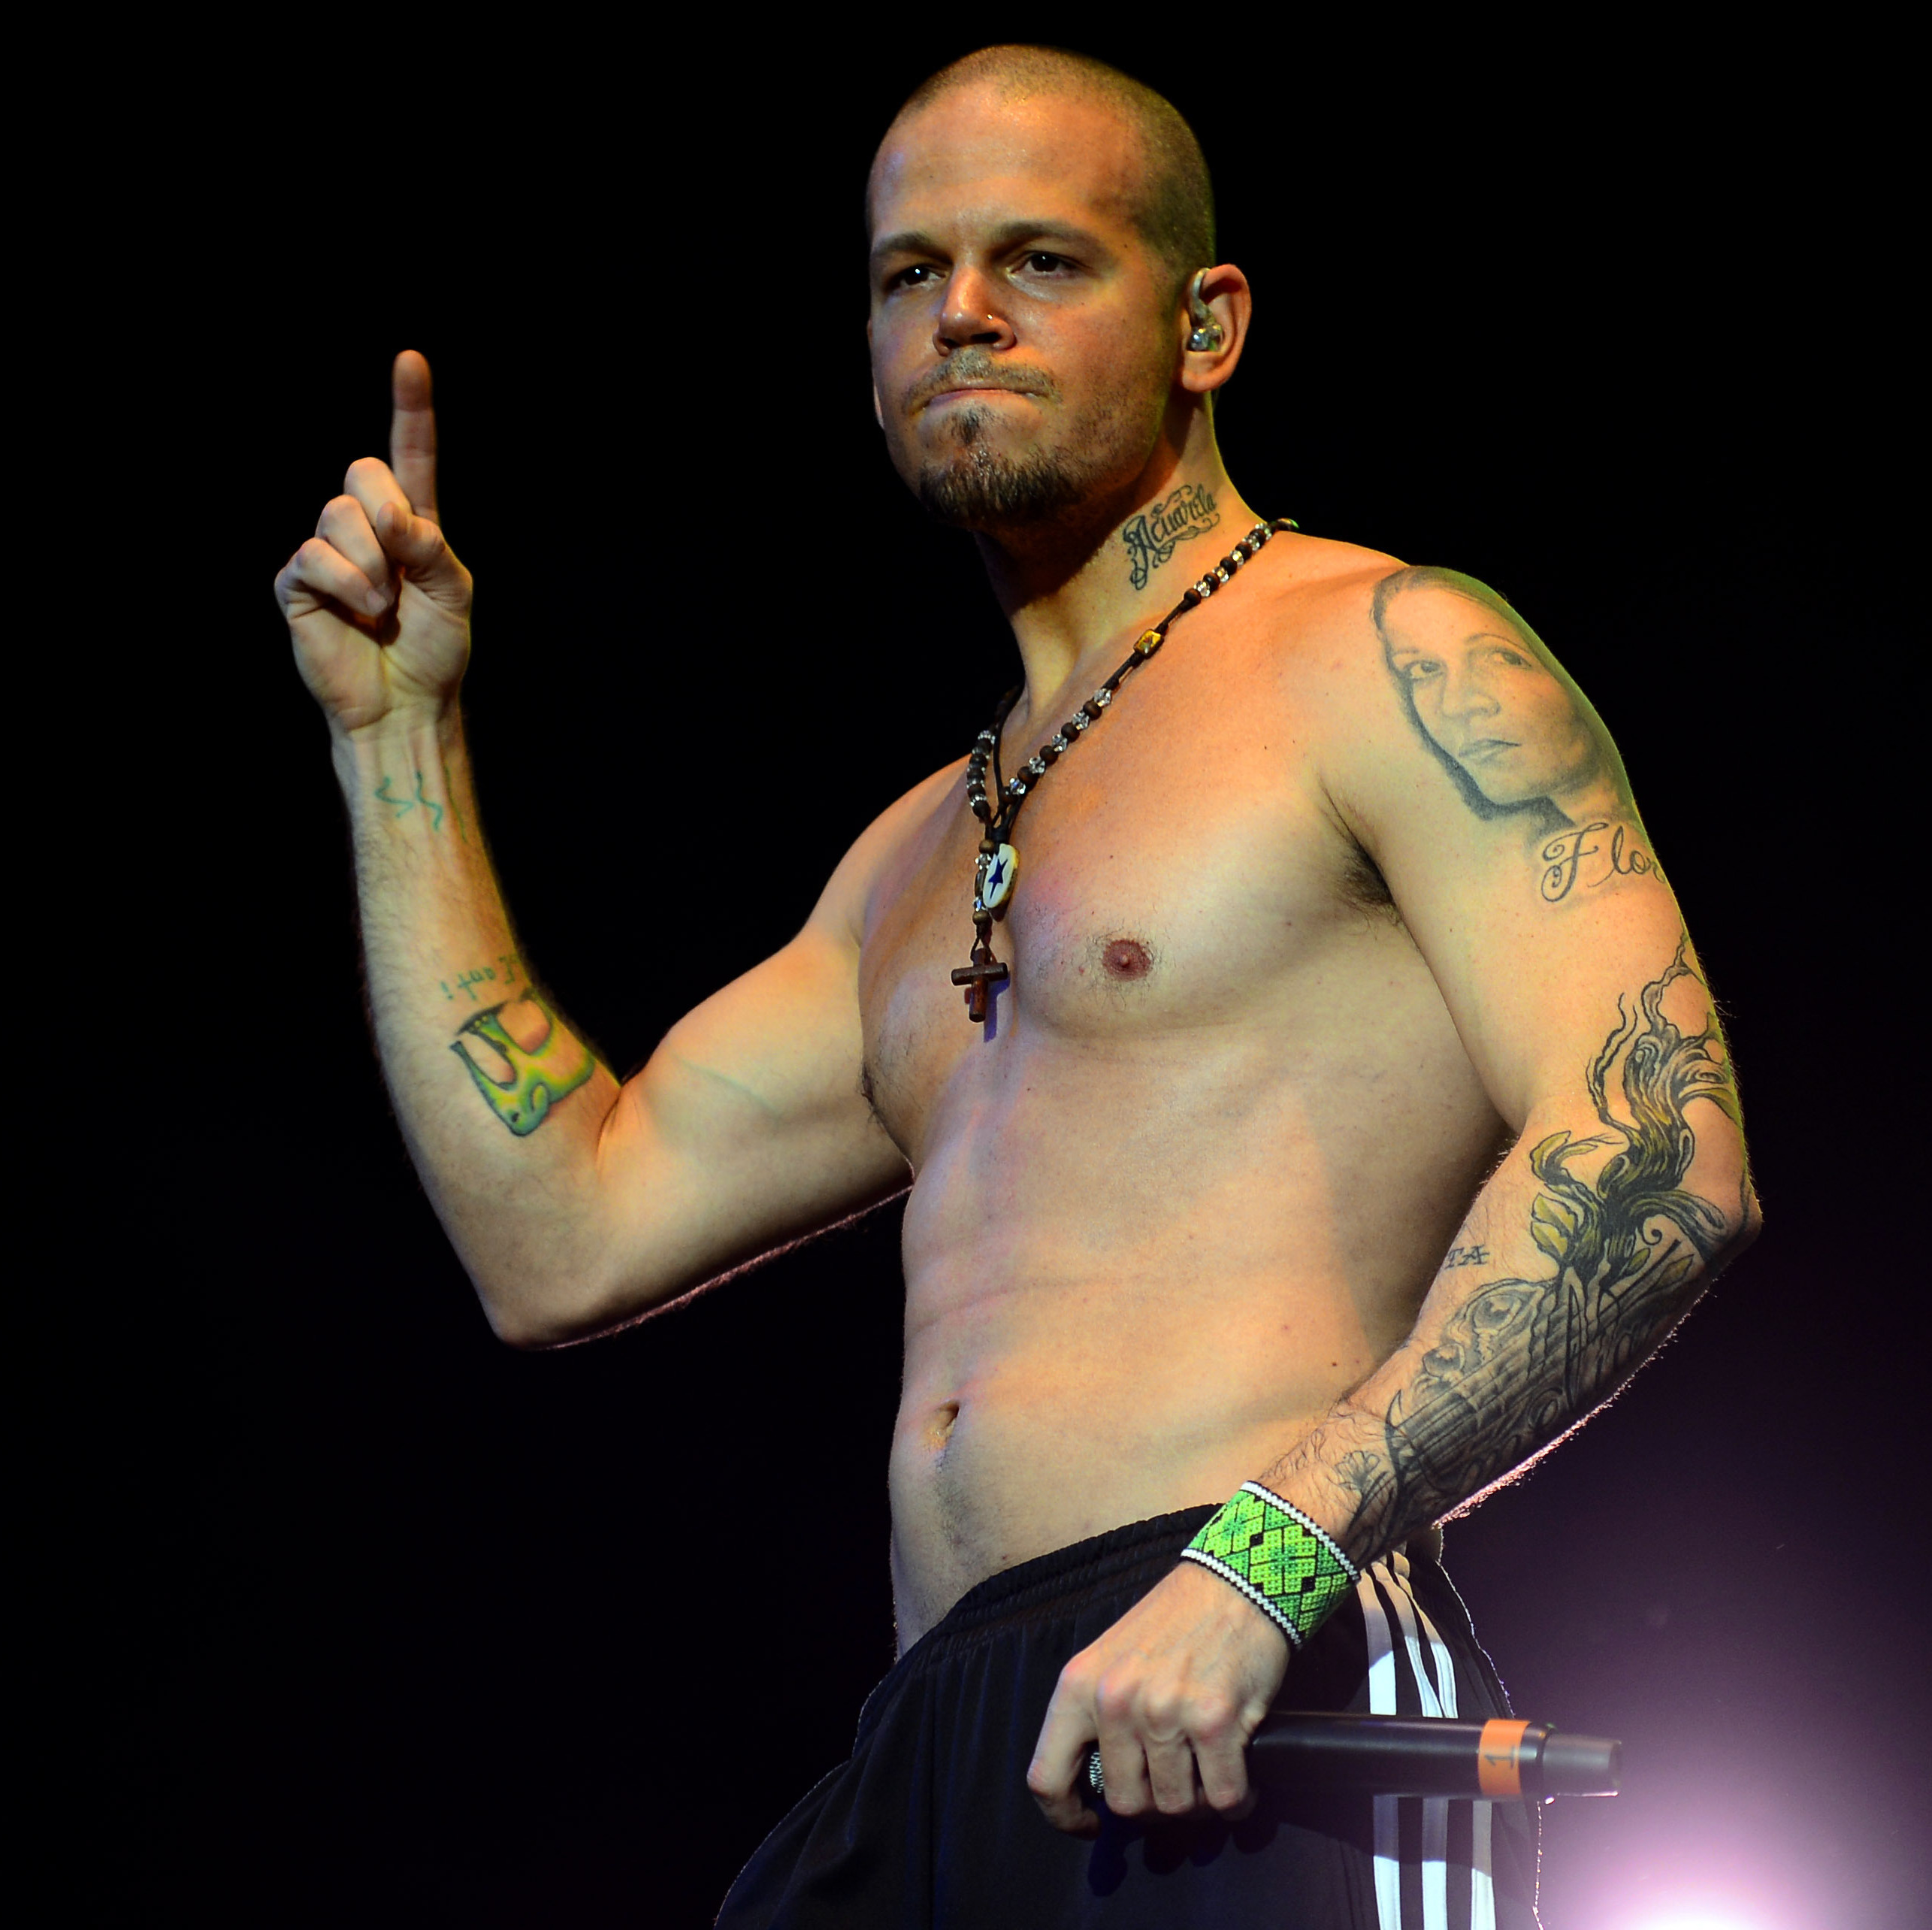 Puerto Rican singer Rene of Calle 13 performs during the Wirikuta Fest at the Foro Sol in Mexico City May 26.